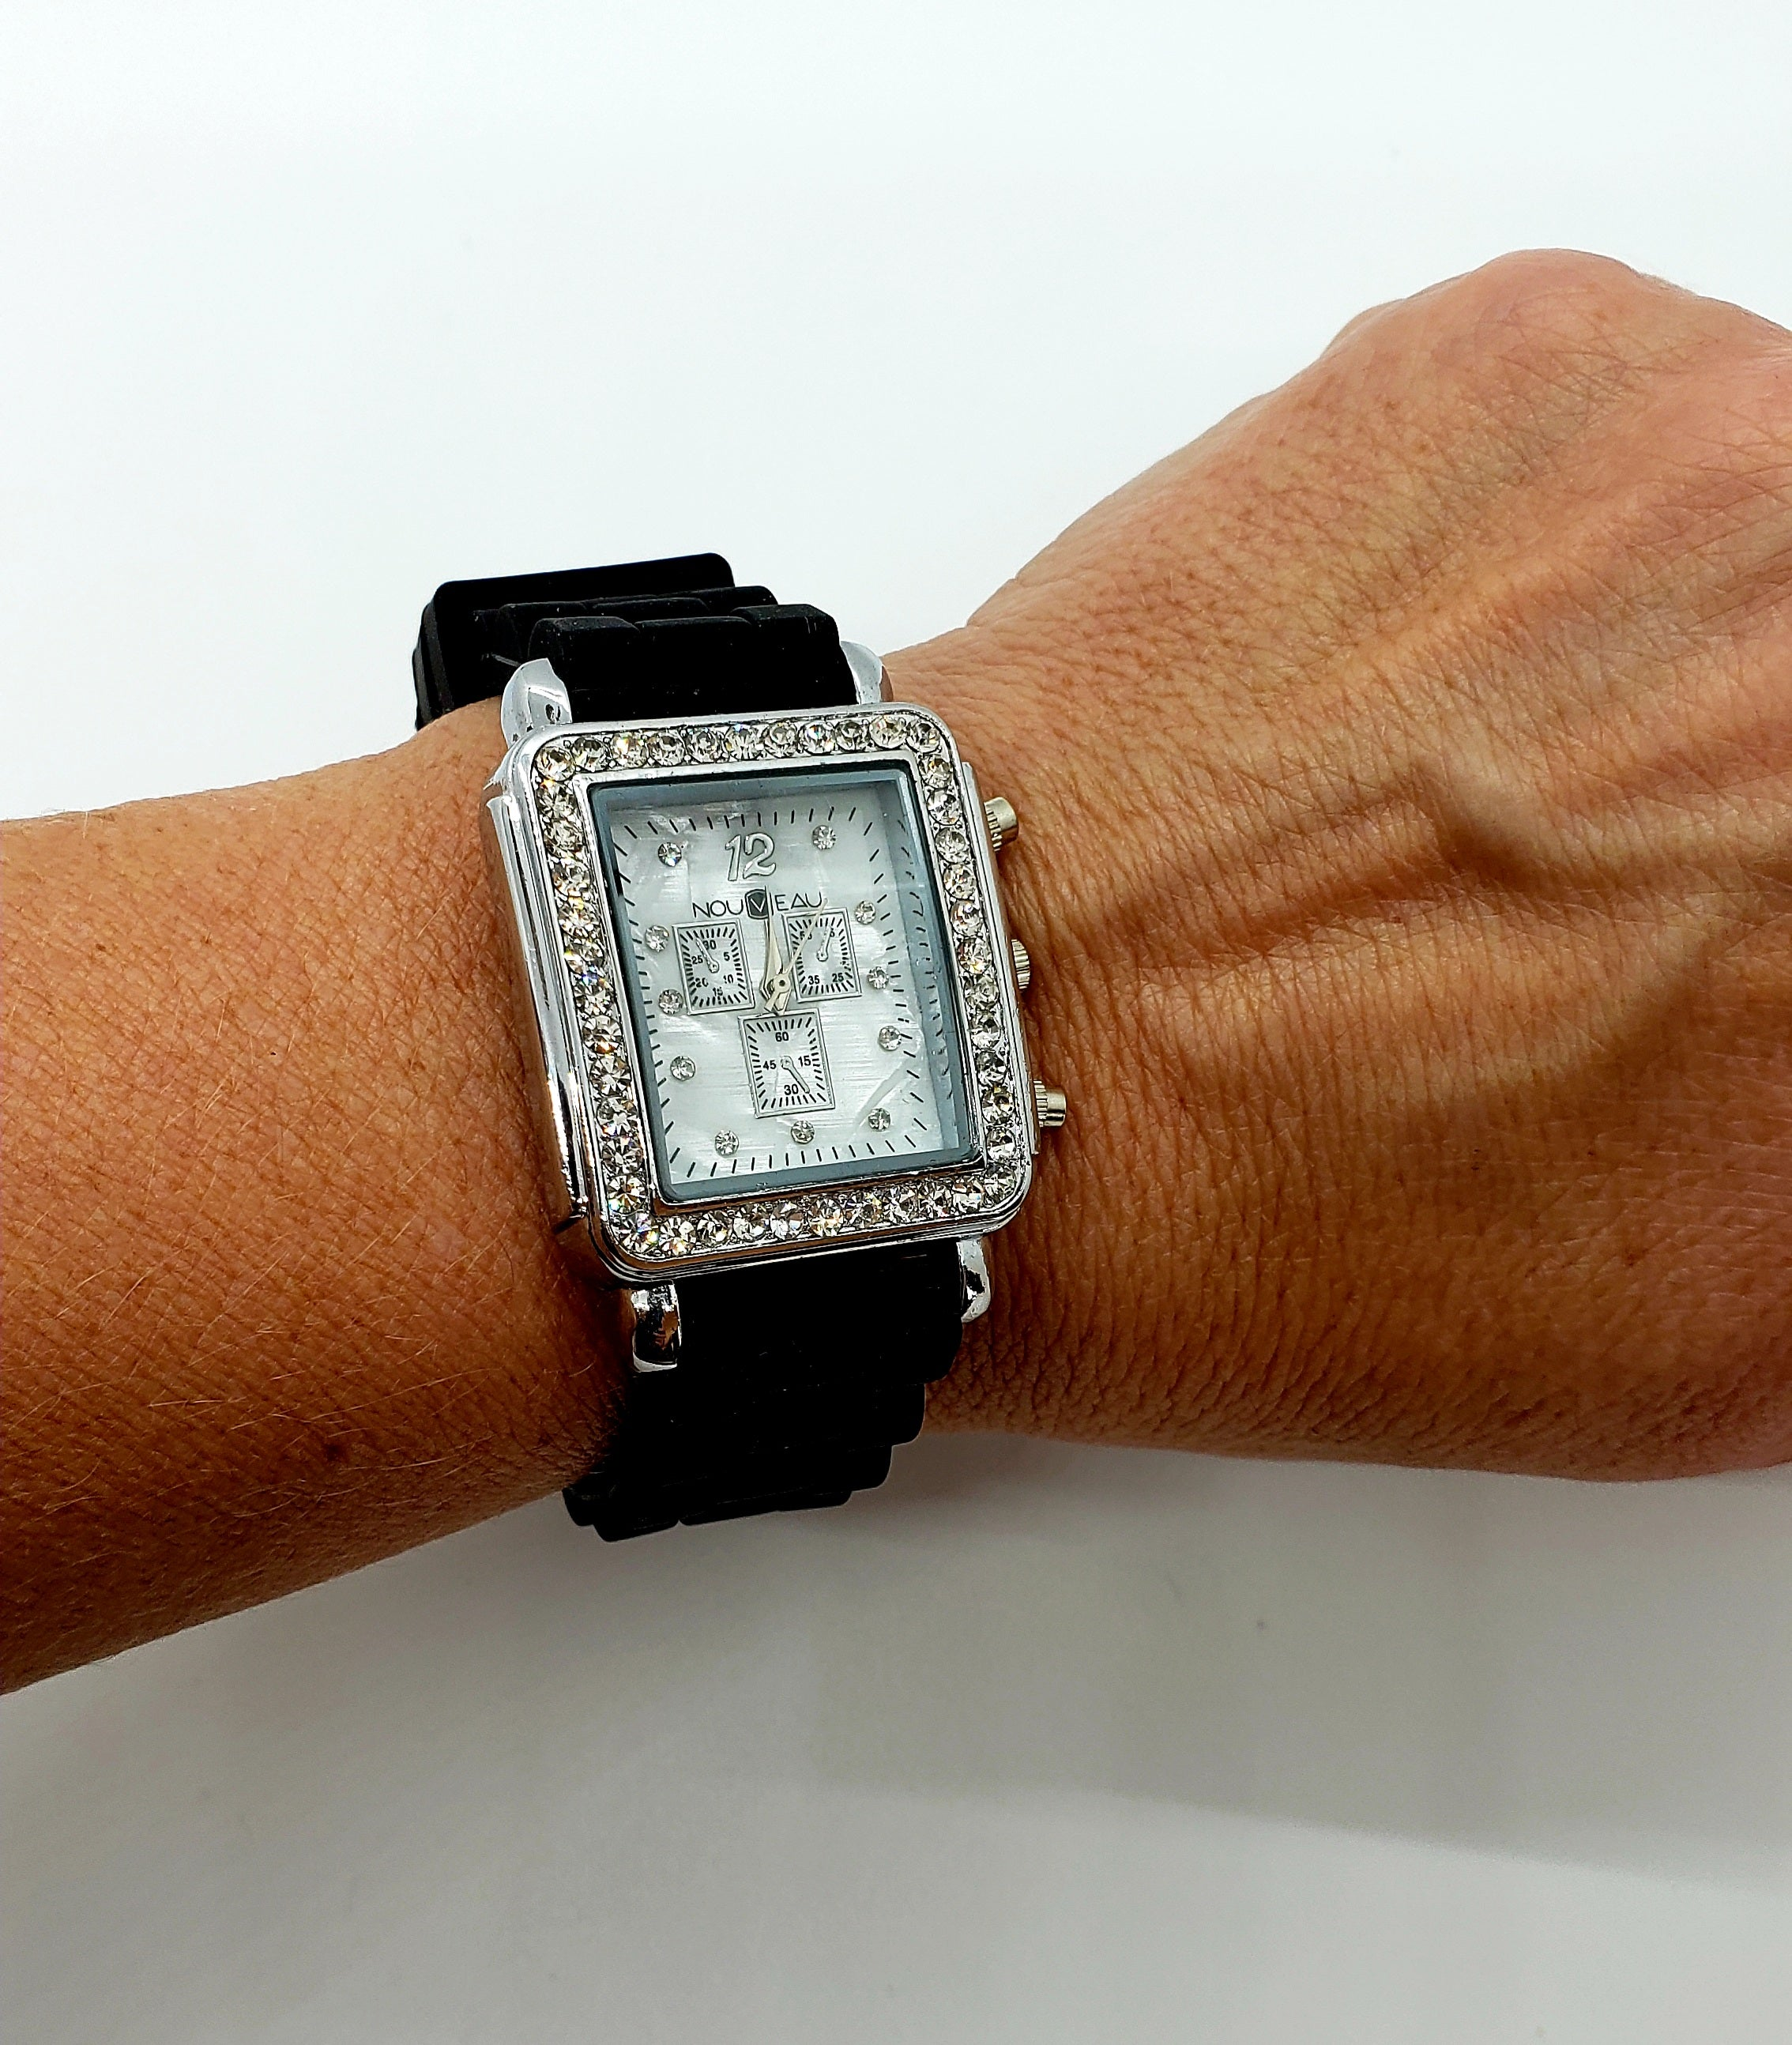 *NEW* Nouveau Watch Black Silicone Band & Stainless Steel Case - Macomb County ReStores